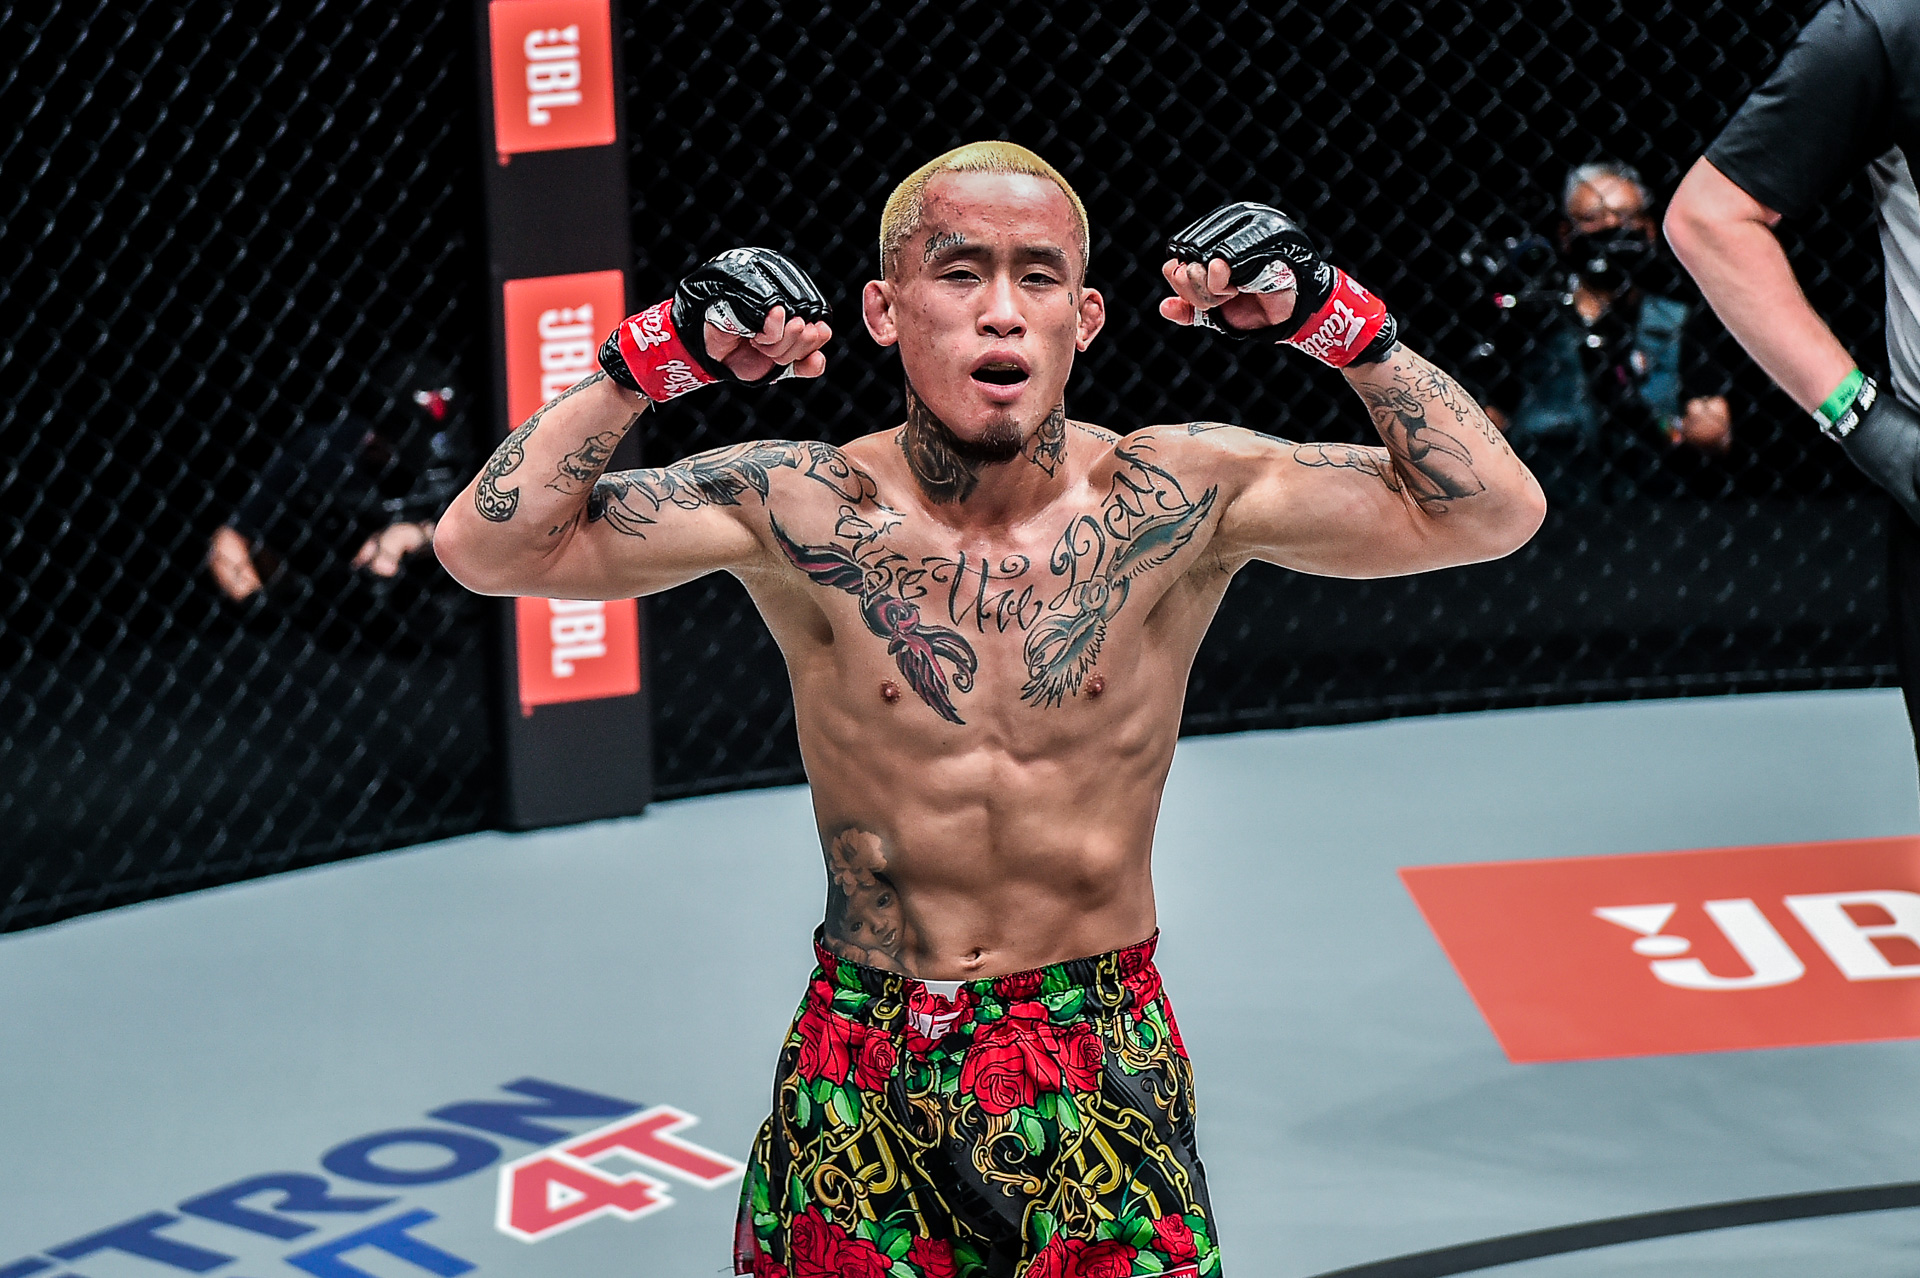 Scenes from the fight between Anthony Do and Liang Hui at ONE: FULL BLAST